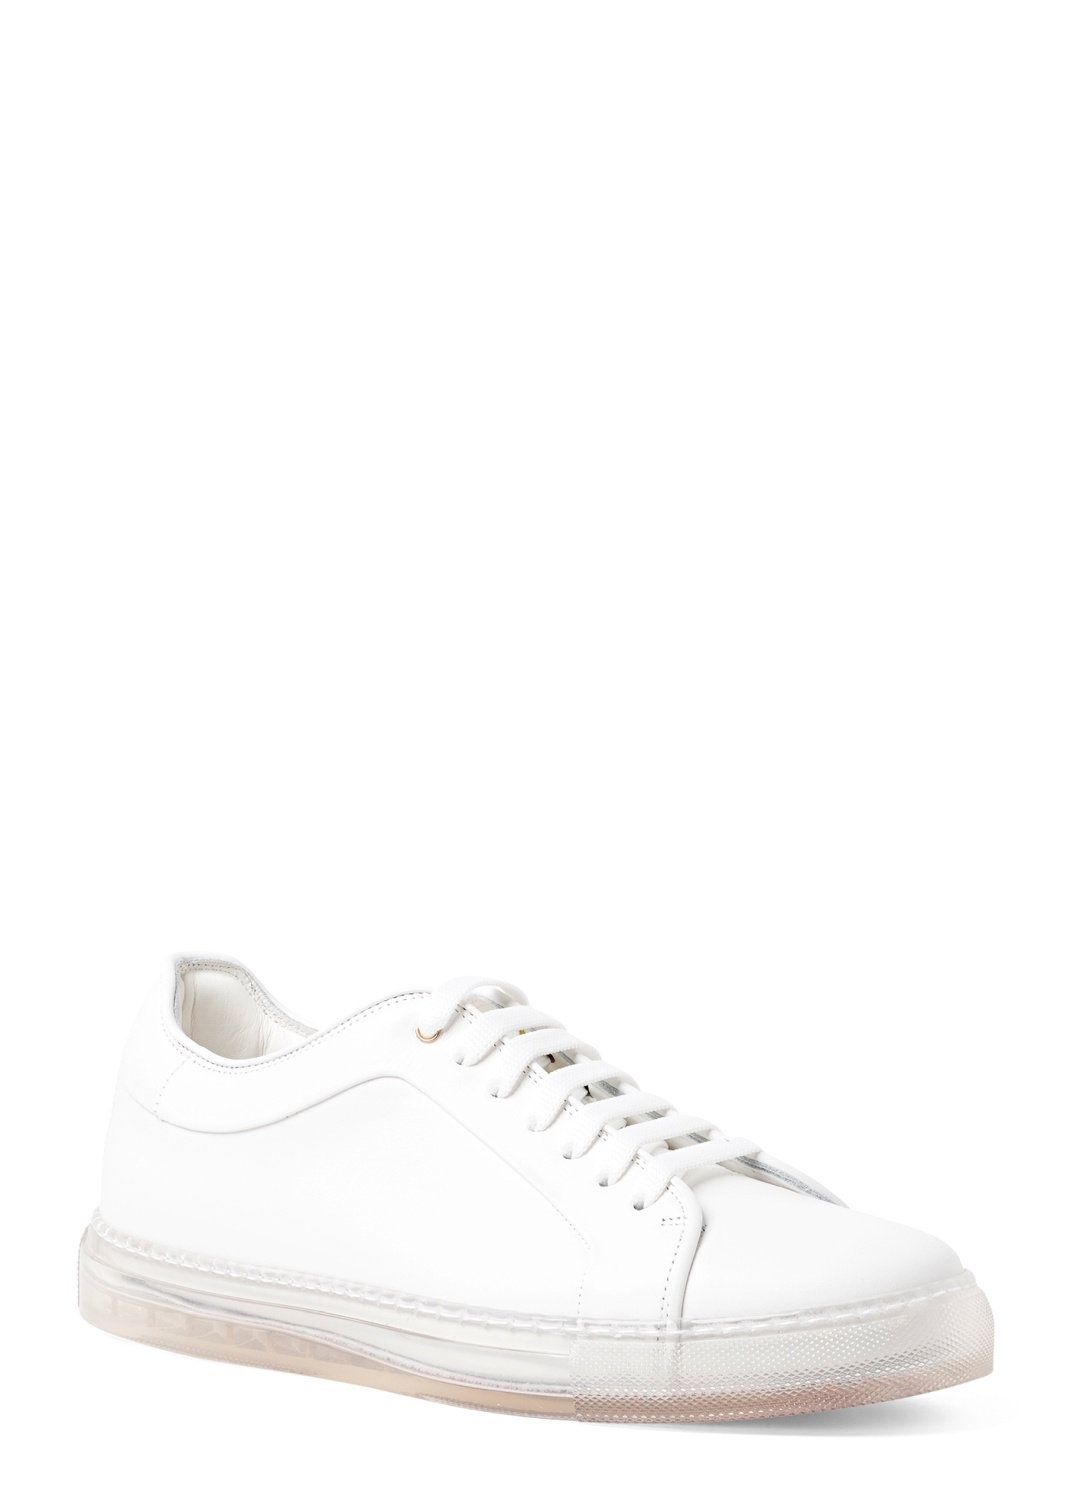 MENS SHOE NASTRO WHITE image number 1